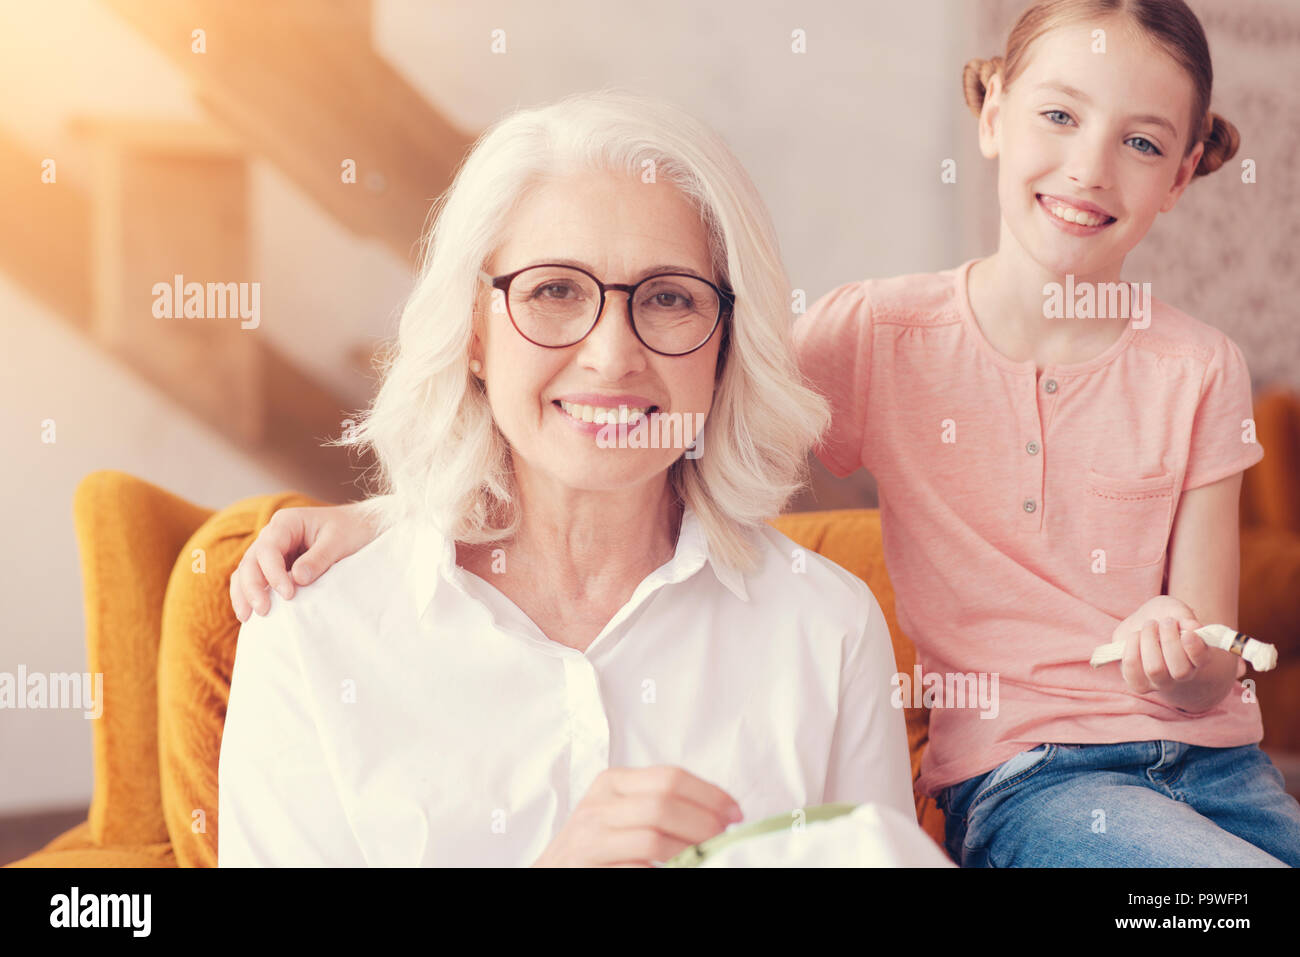 Family ties. Positive minded young lady embracing her beautiful granny in an armchair and both posing for the camera with cheerful smiles on their fac - Stock Image